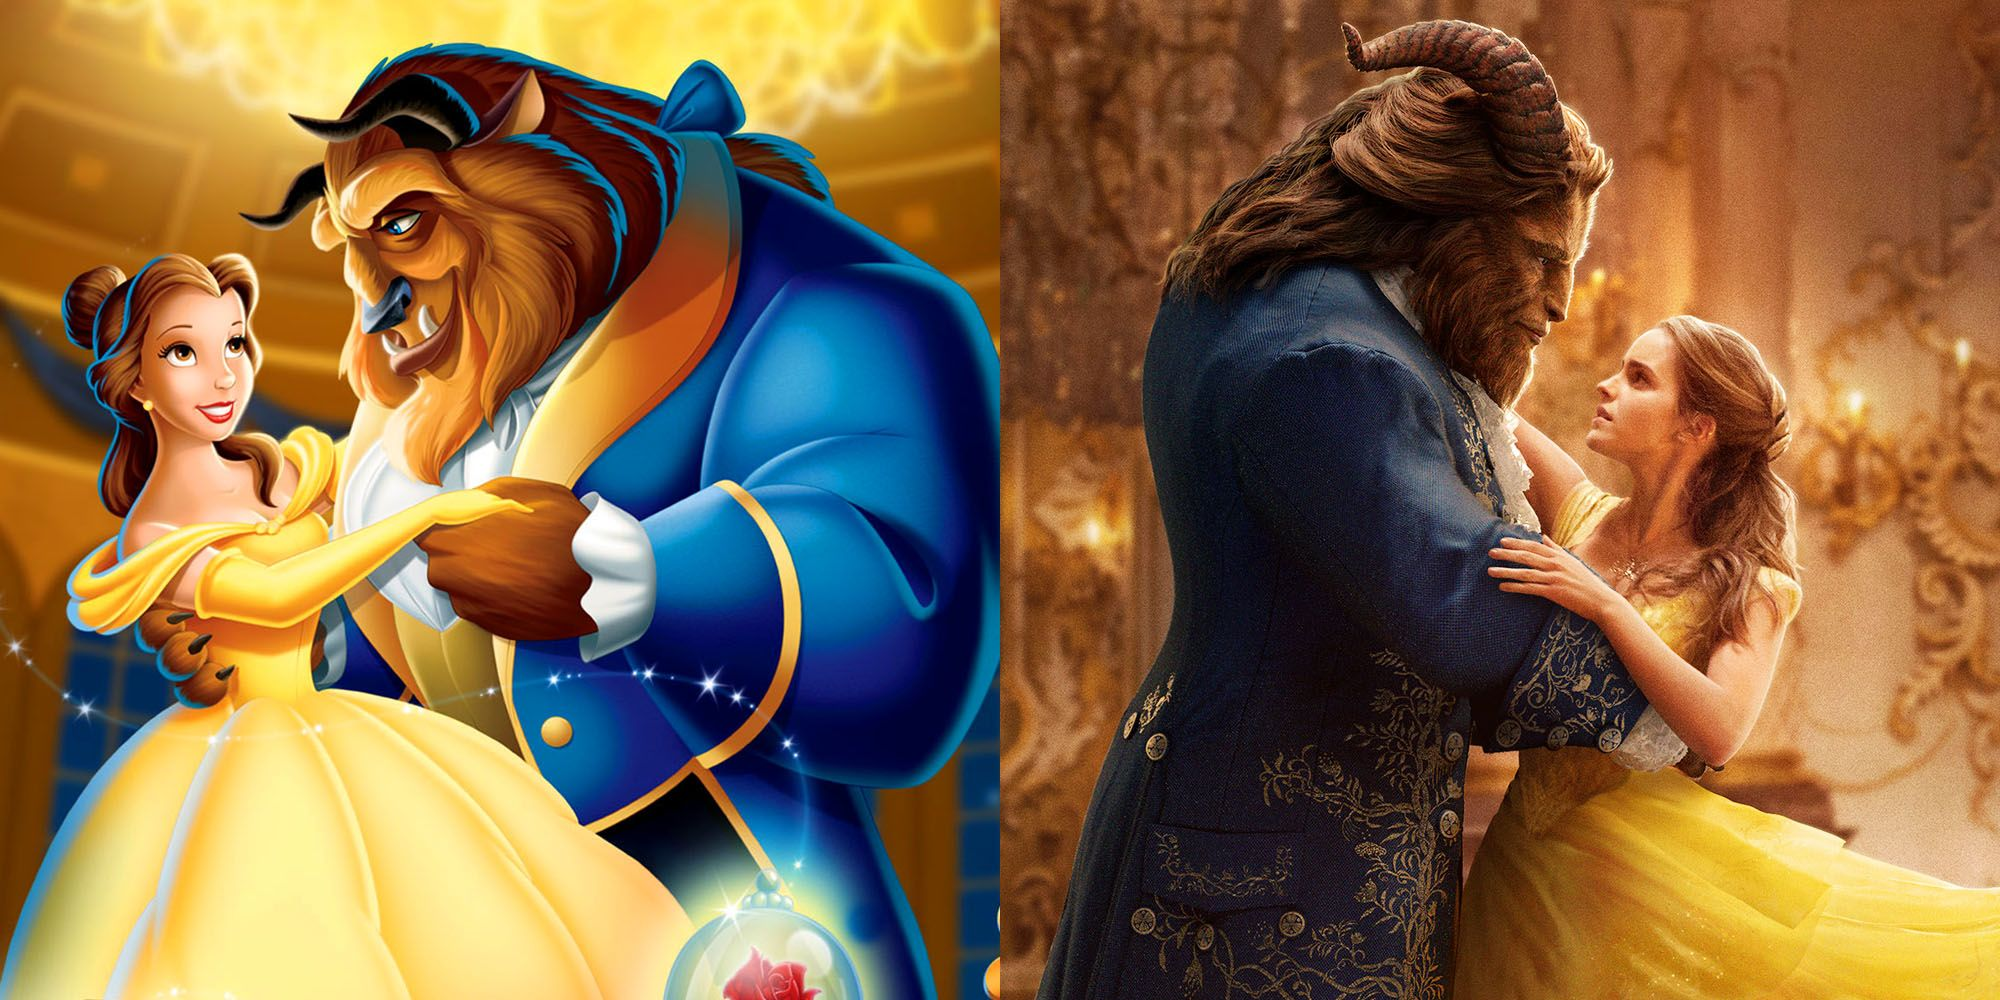 M: Beauty and the Beast: The]